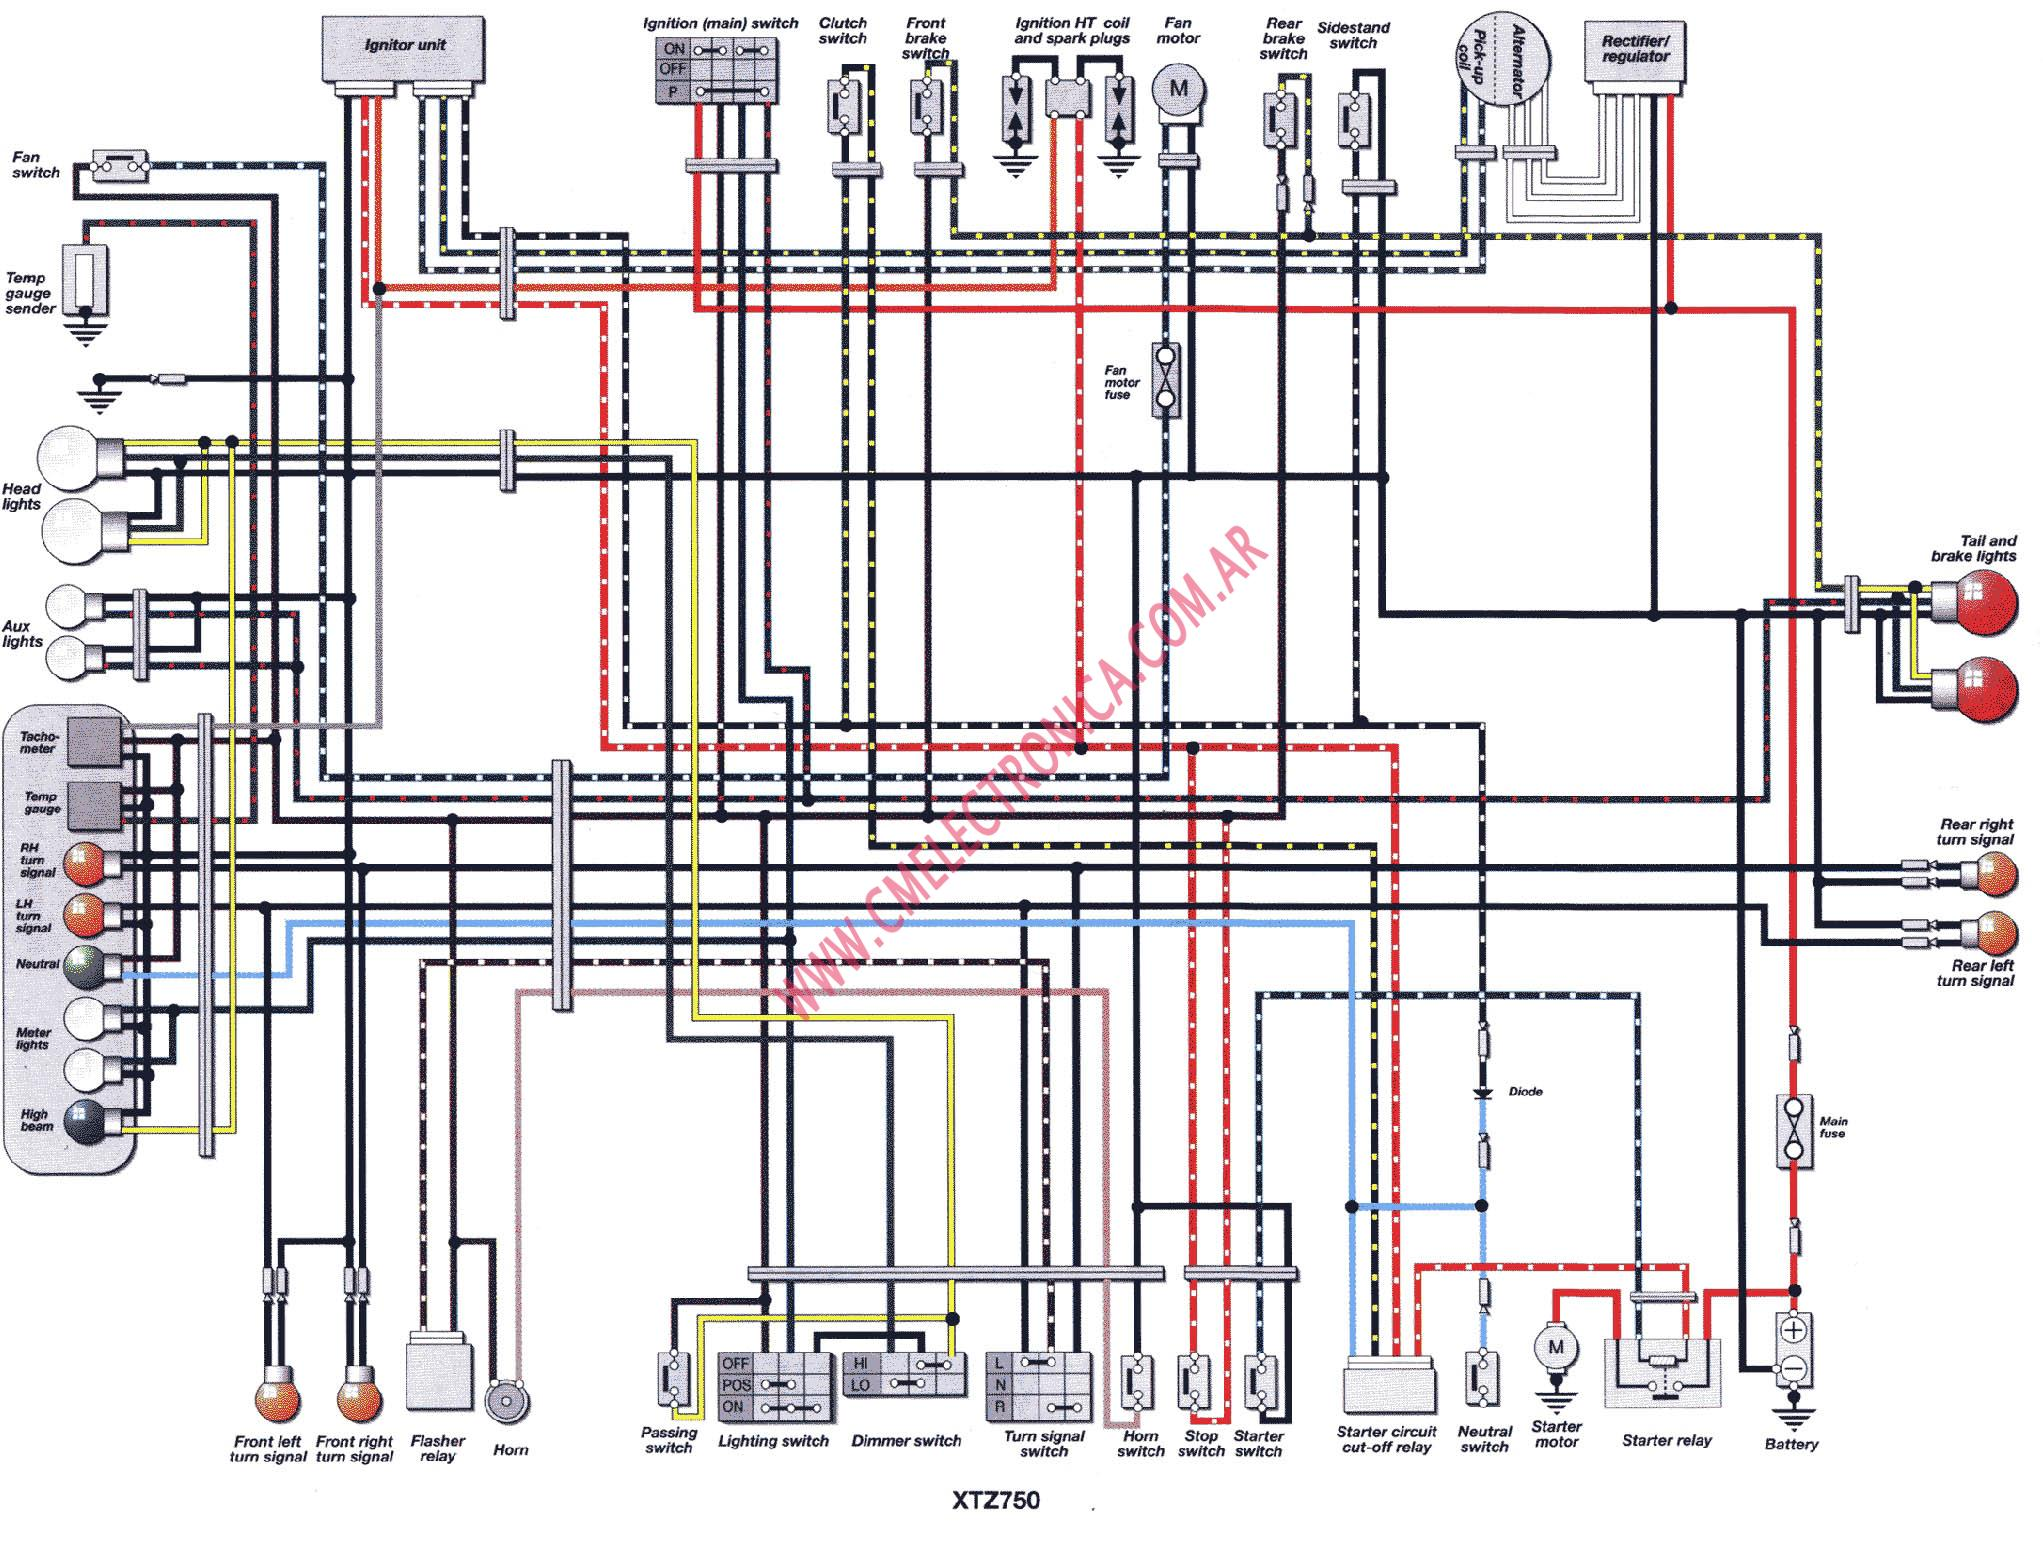 Yamaha G8 Golf Cart Electric Wiring Diagram Image For Electrical likewise Schematics additionally 1985 Yamaha Gas G2 Golf Cart Wiring Diagram moreover Cartinfo further Roger Federer Consoles Shock Wimbledon Exit Luxury Yacht Holiday France. on yamaha g2 electric wiring diagram